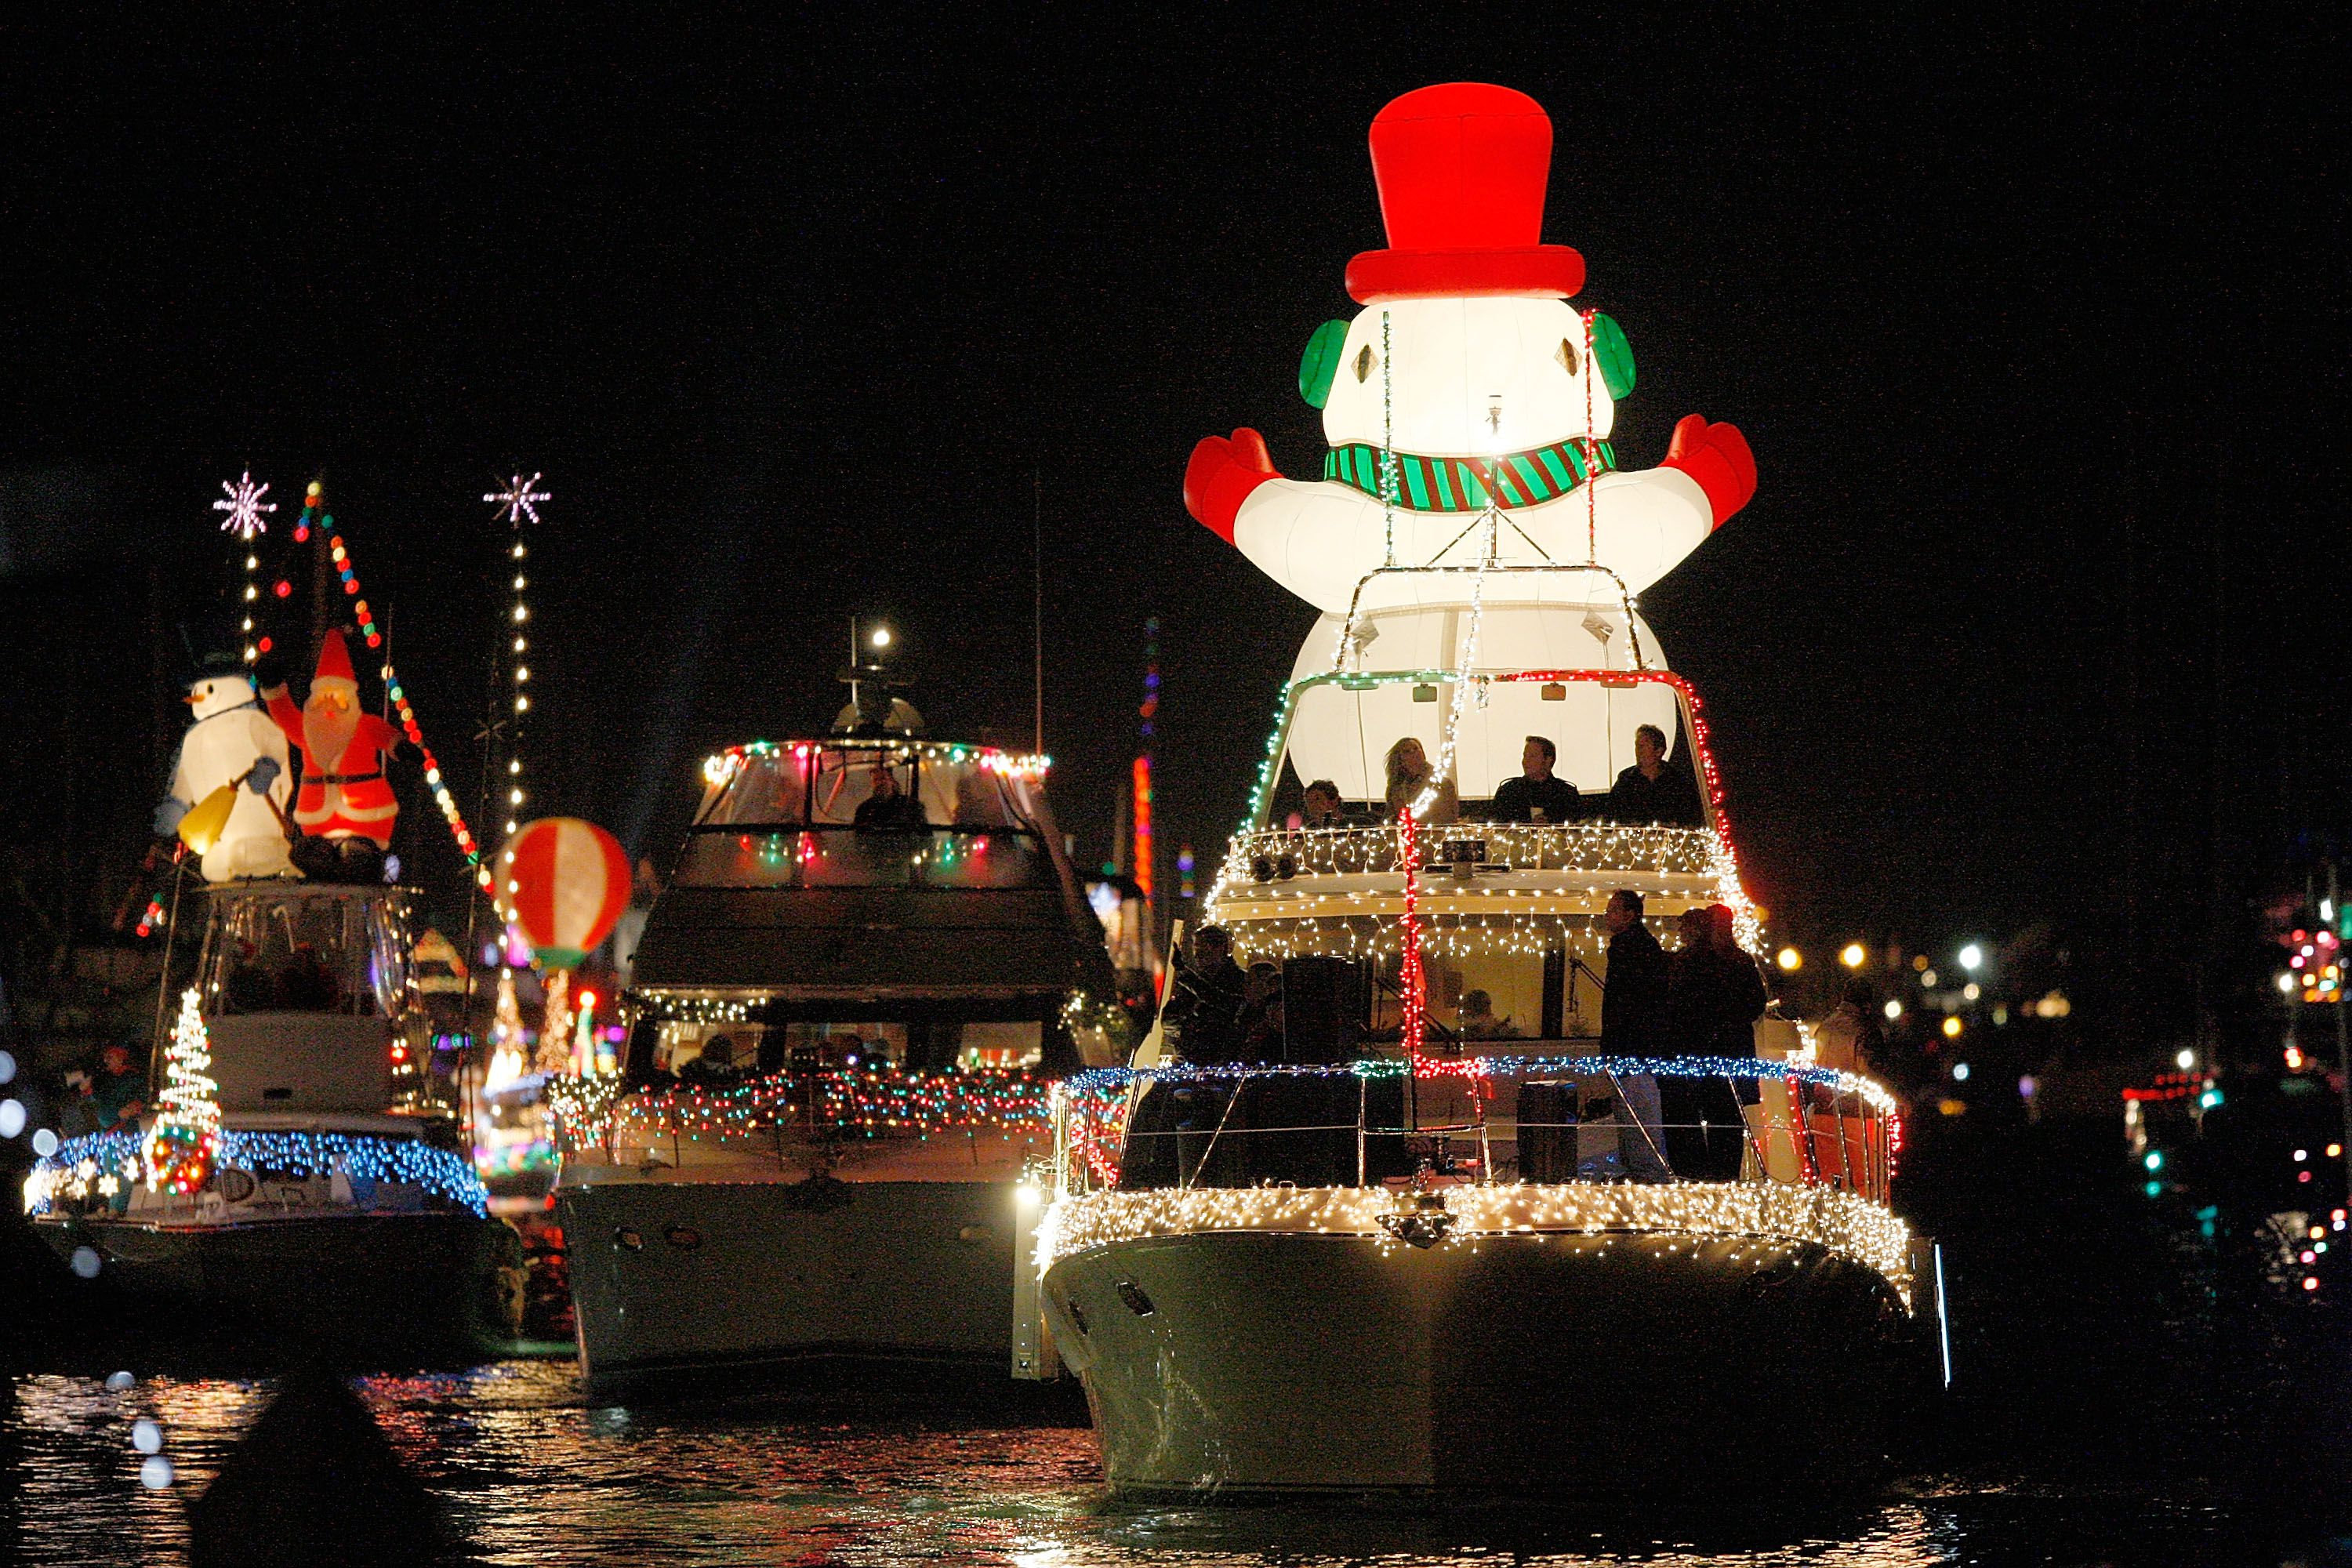 Christmas Boat Parade Decorating Ideas.Newport Beach Christmas Boat Parade The Complete Guide